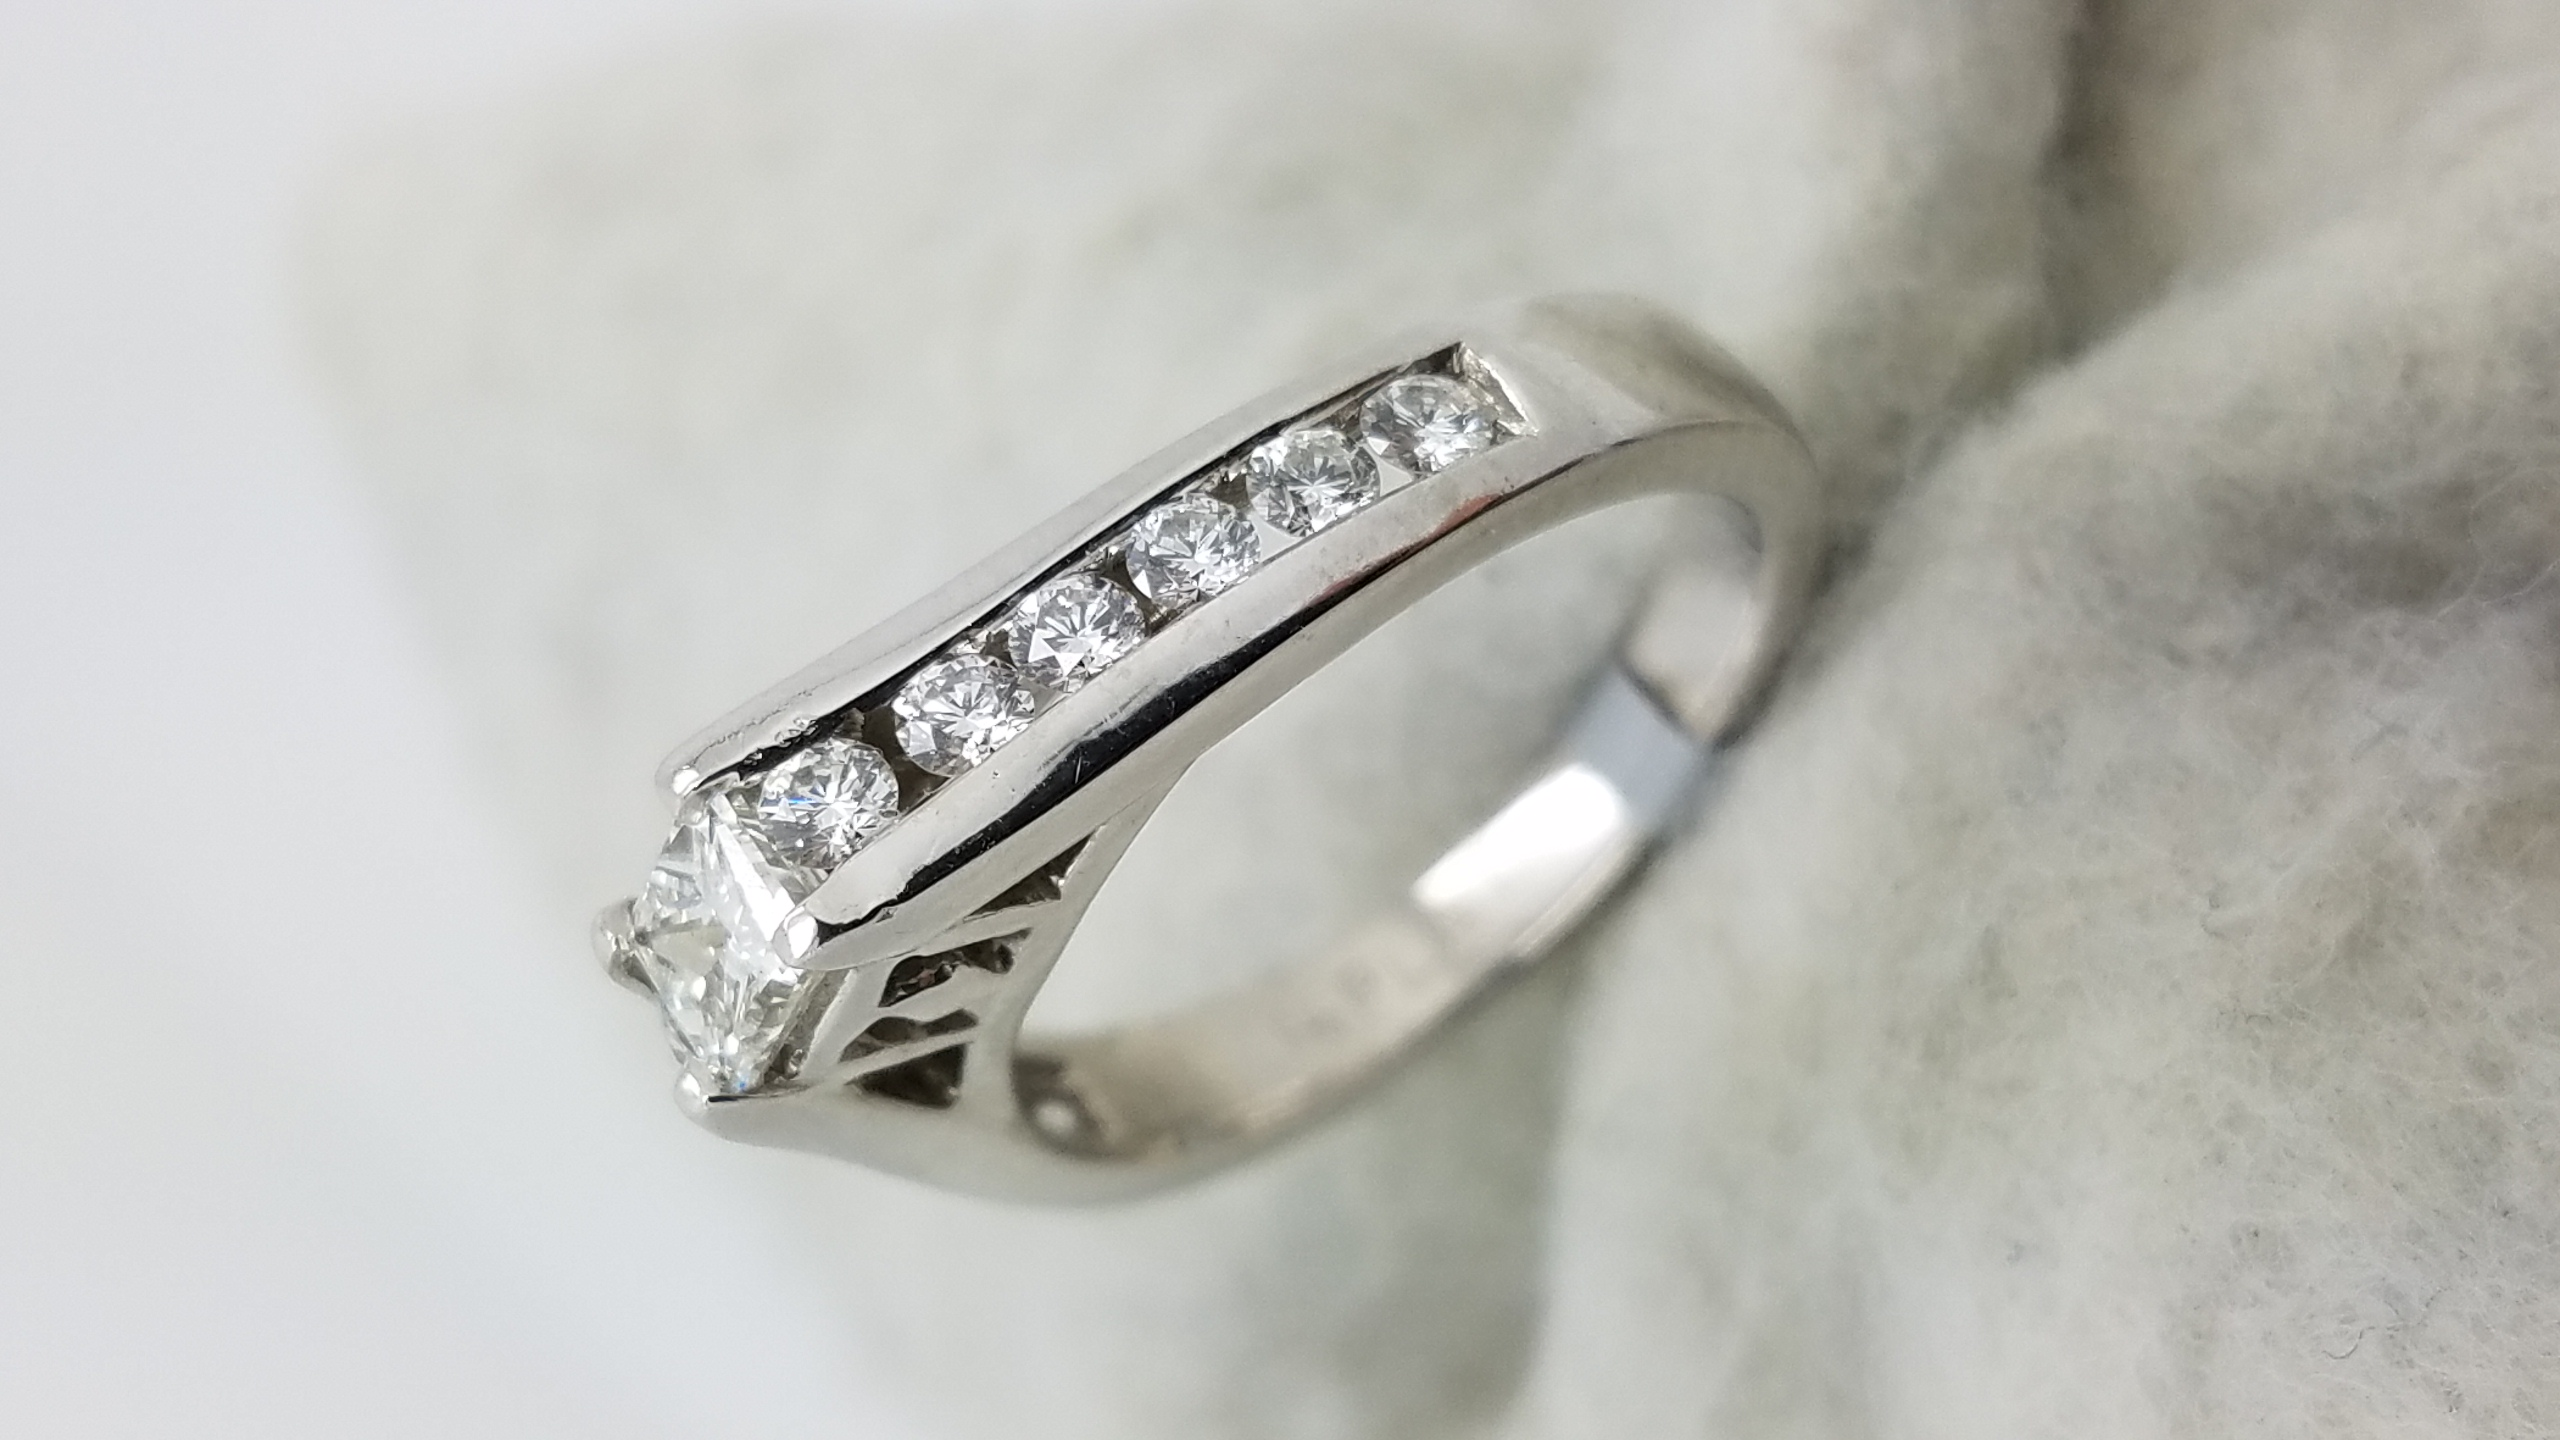 solitaire engagement classic cut oval db platinum ring de beers